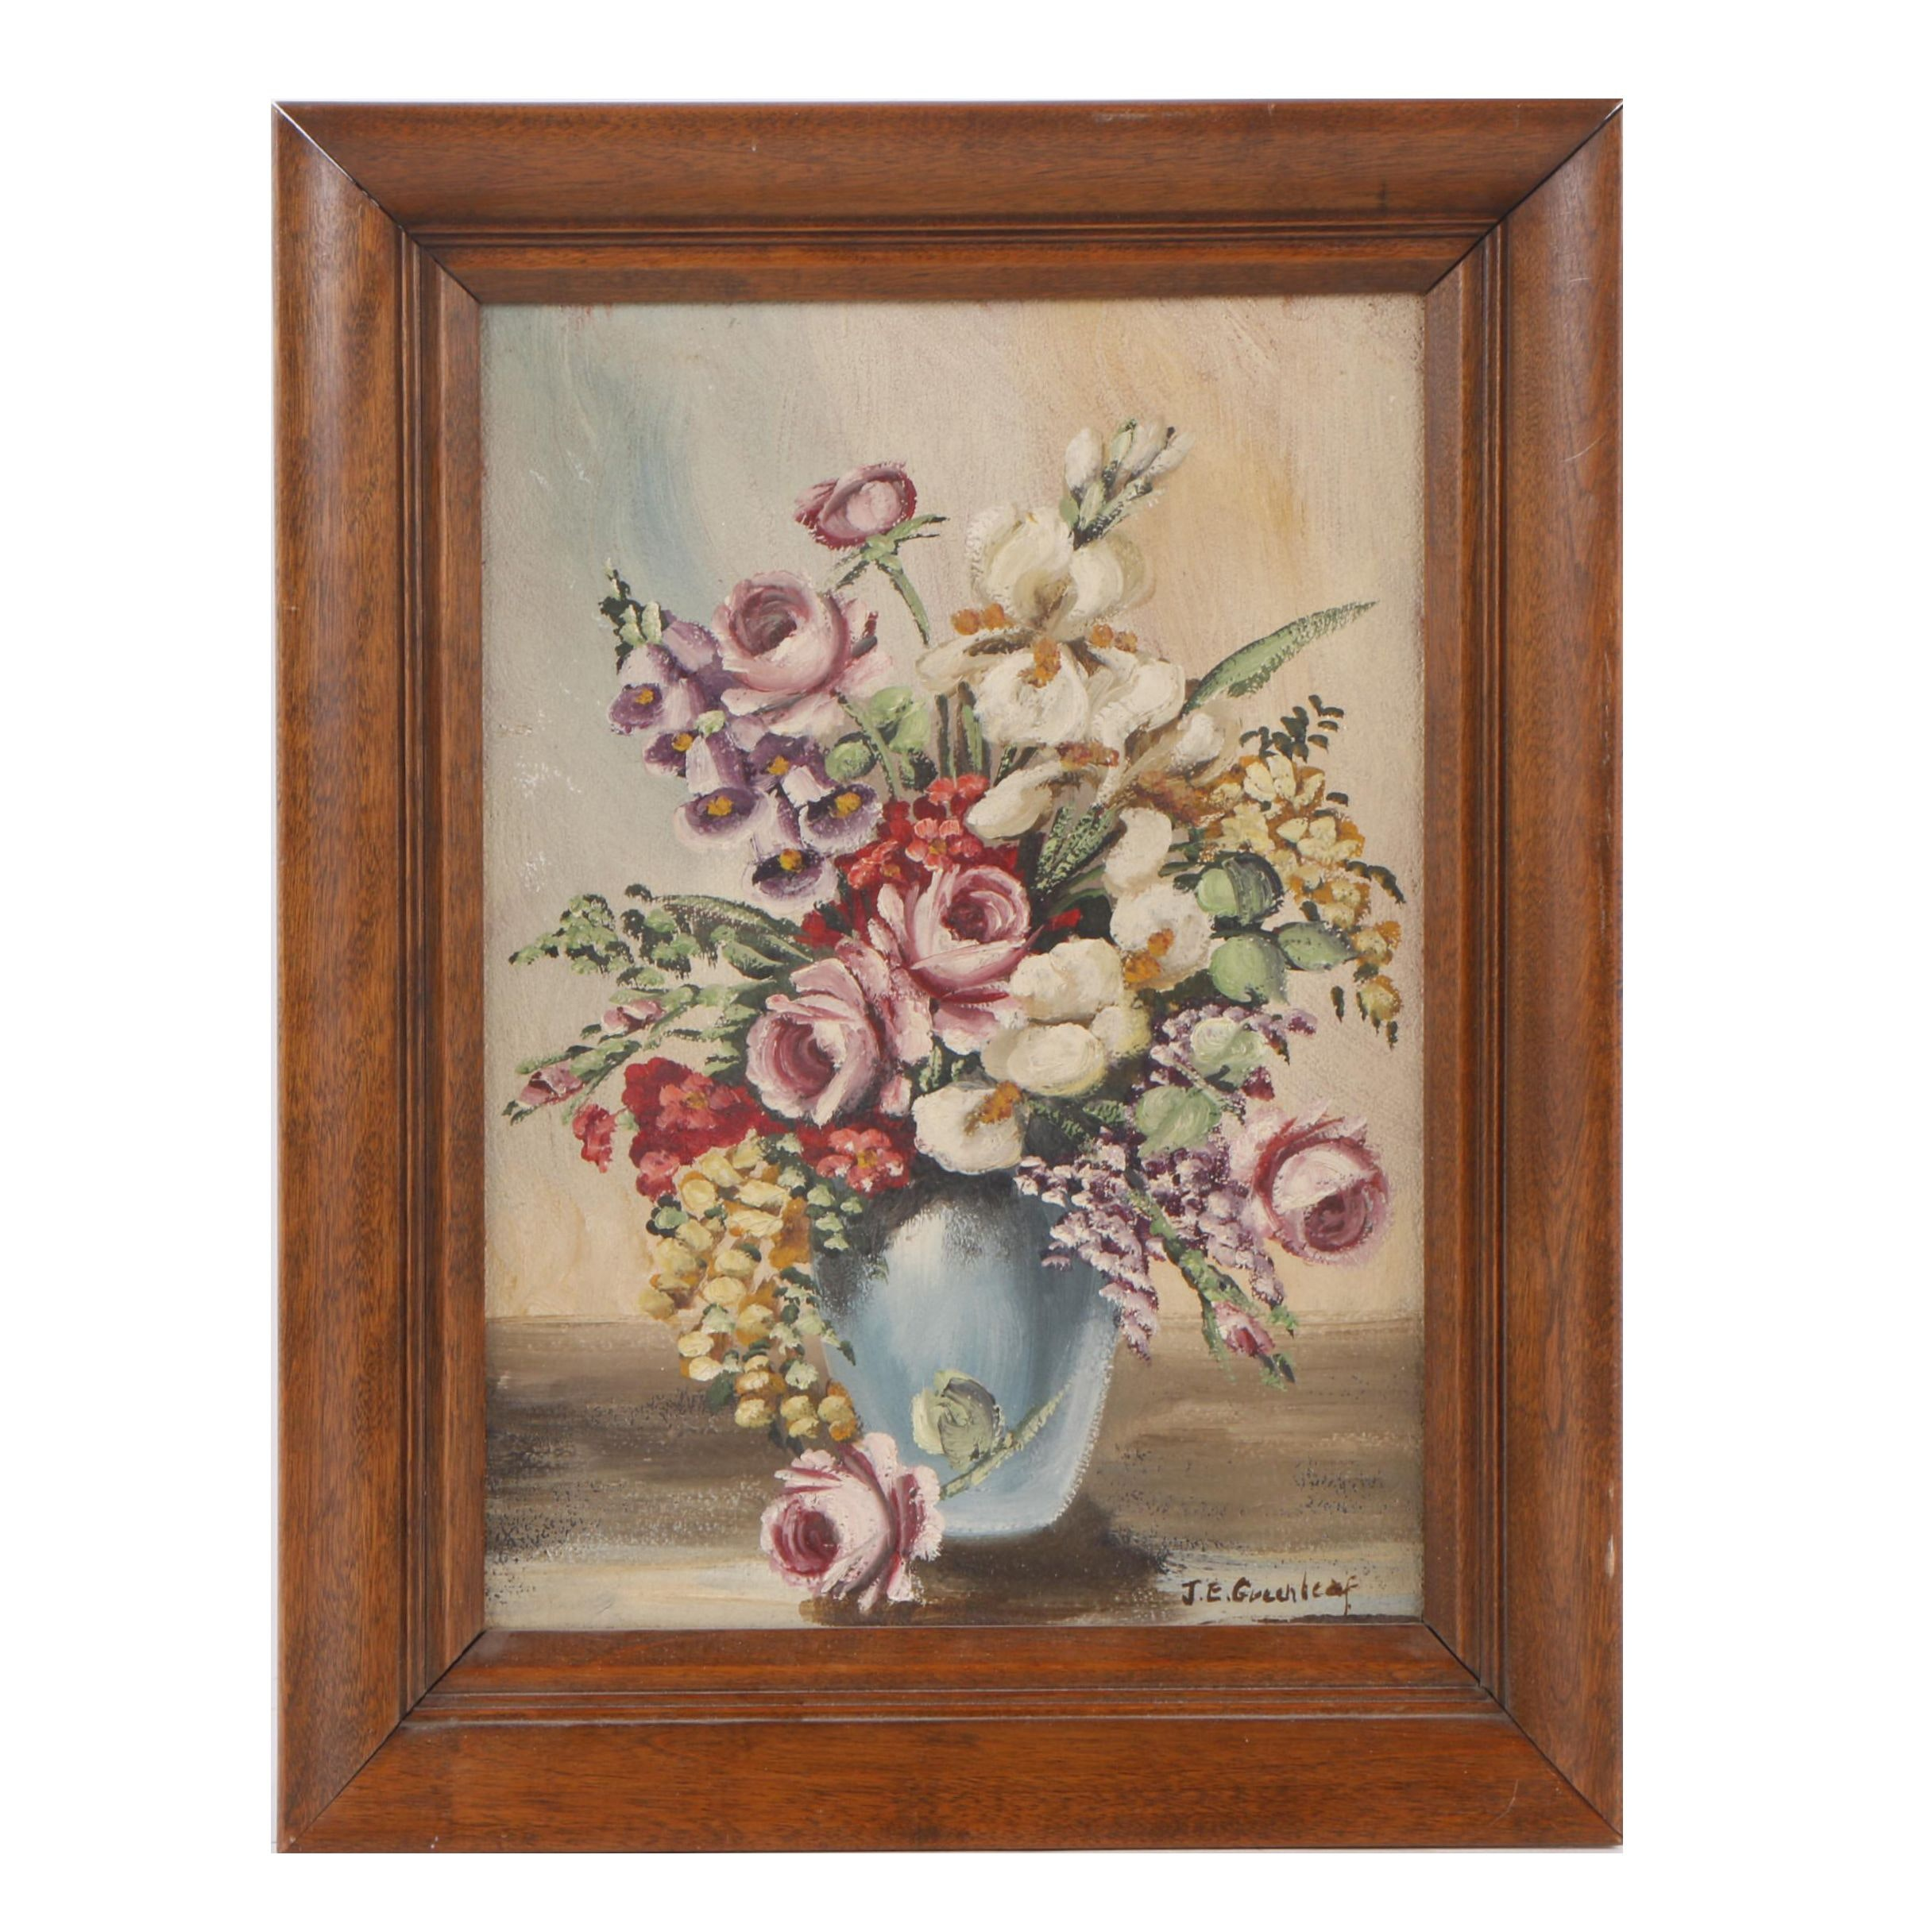 Janet Greenleaf Oil Painting of a Floral Still Life